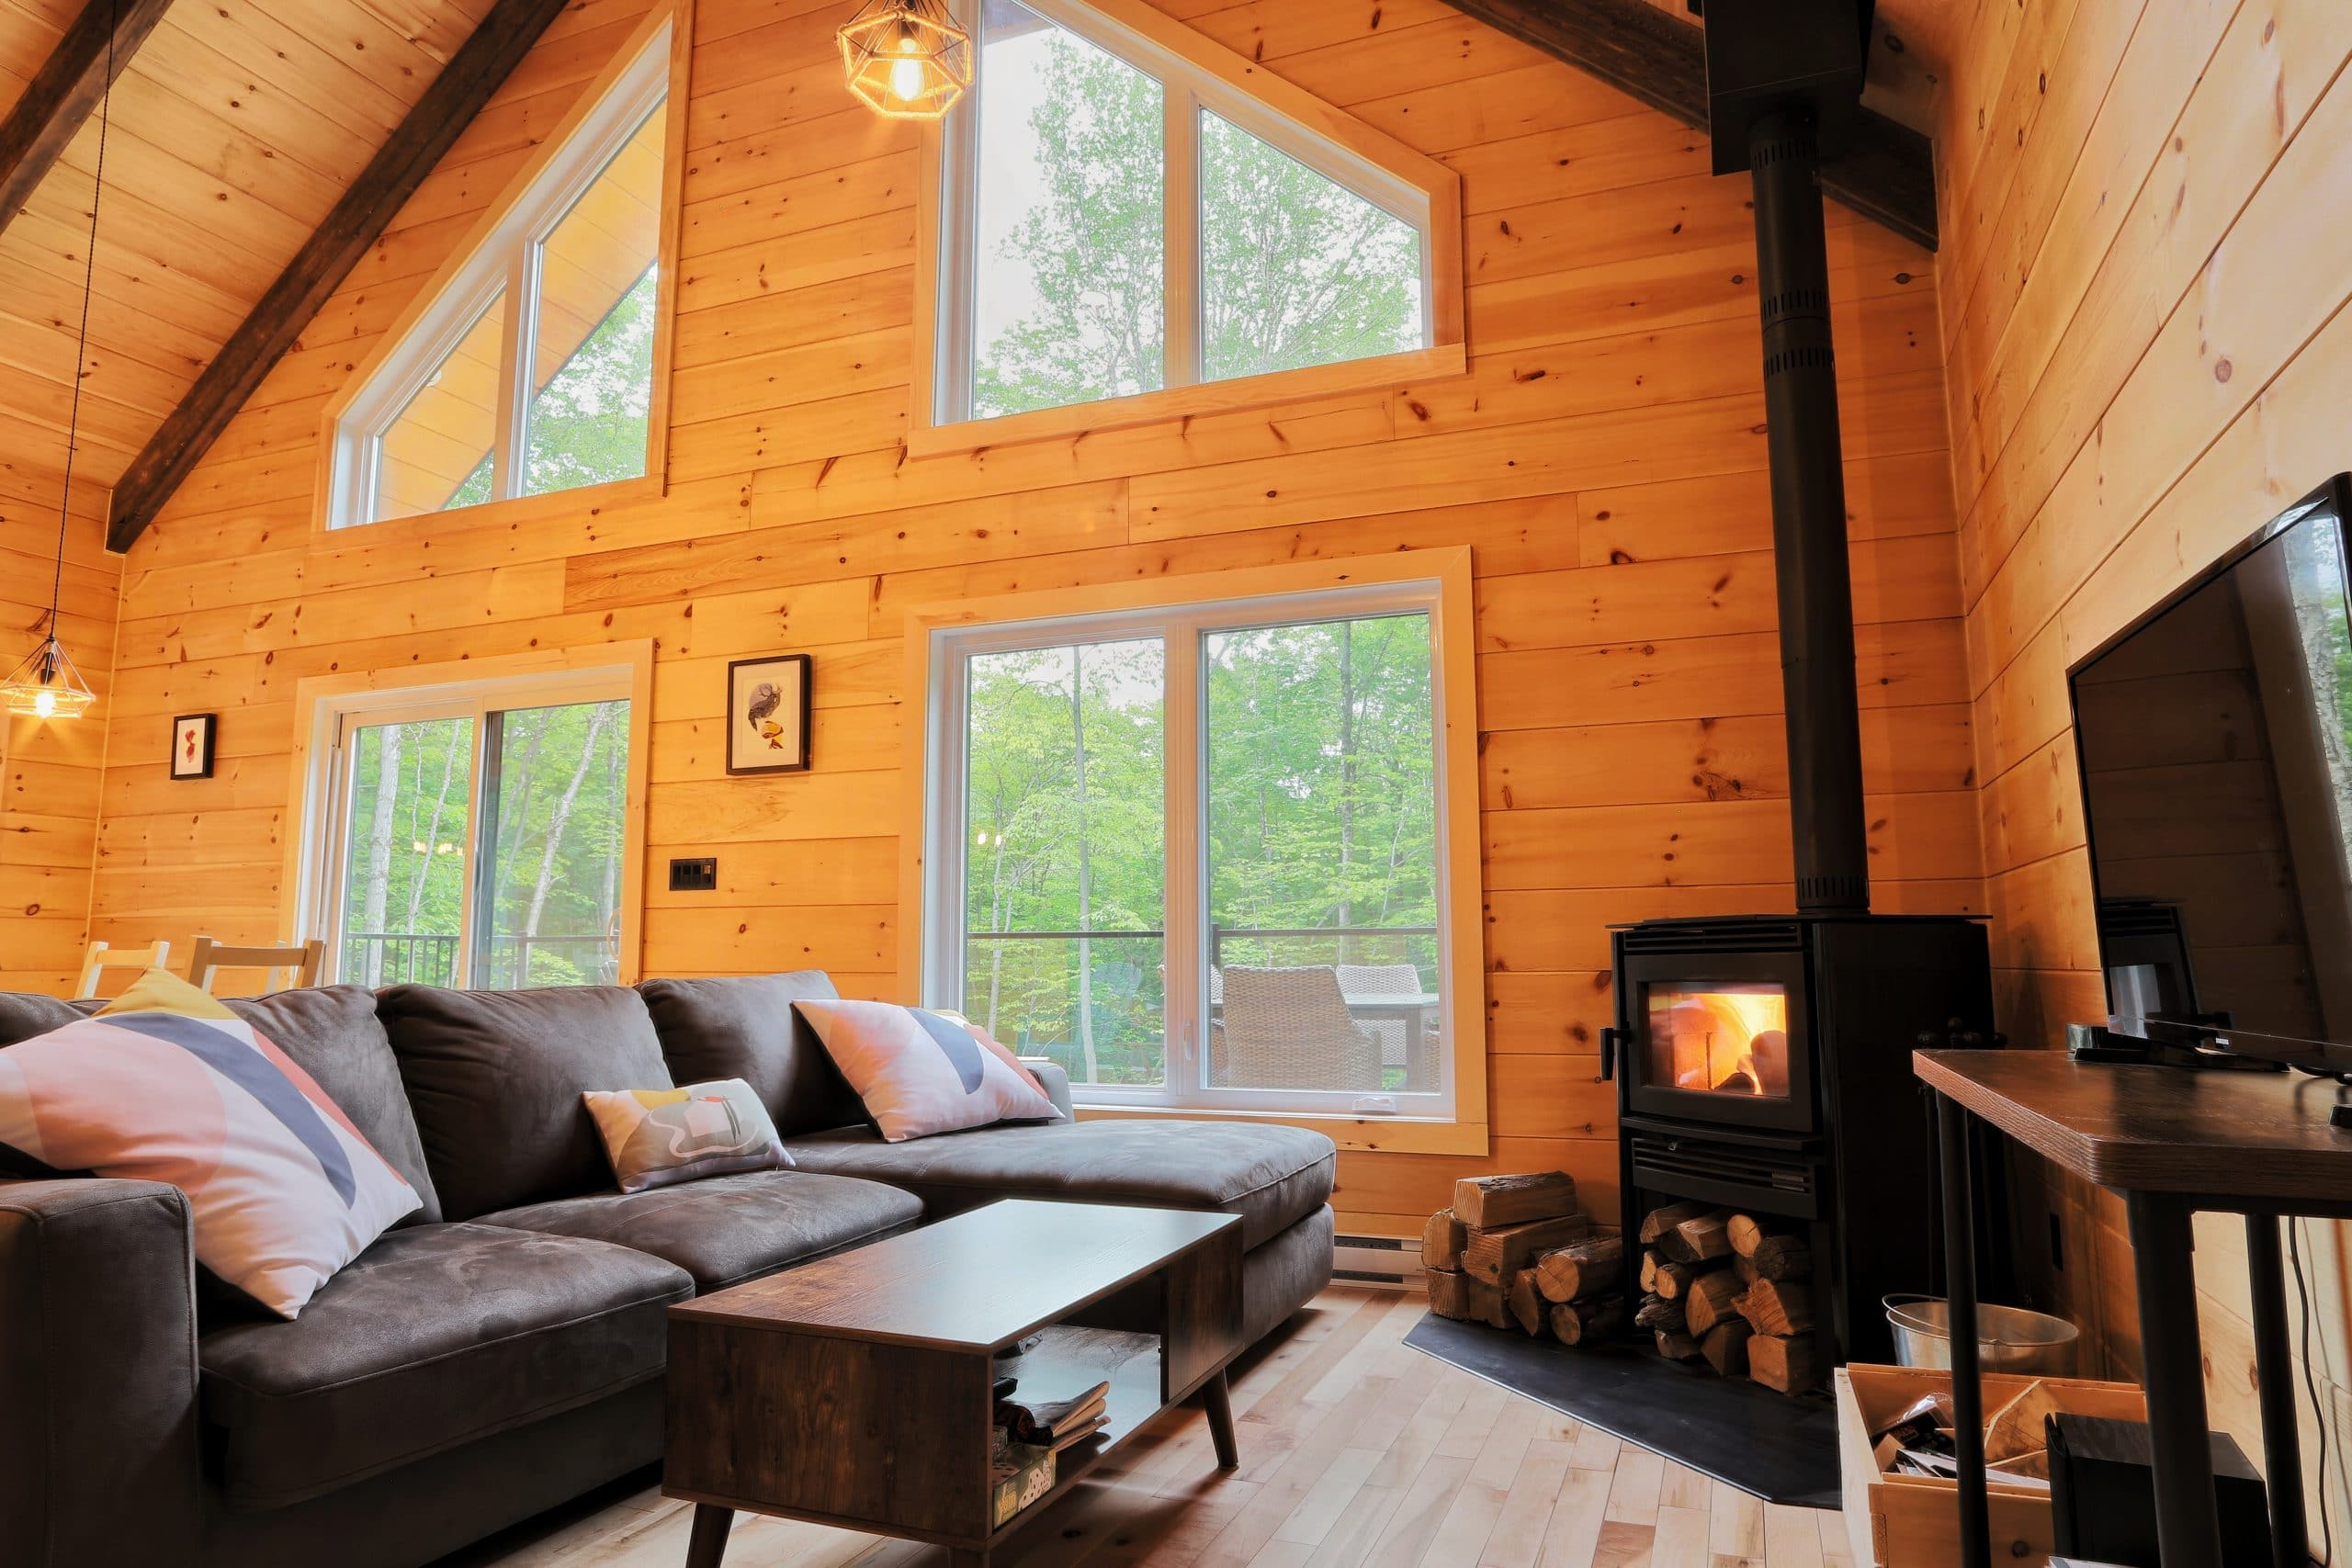 Photos of the chalet, number 7